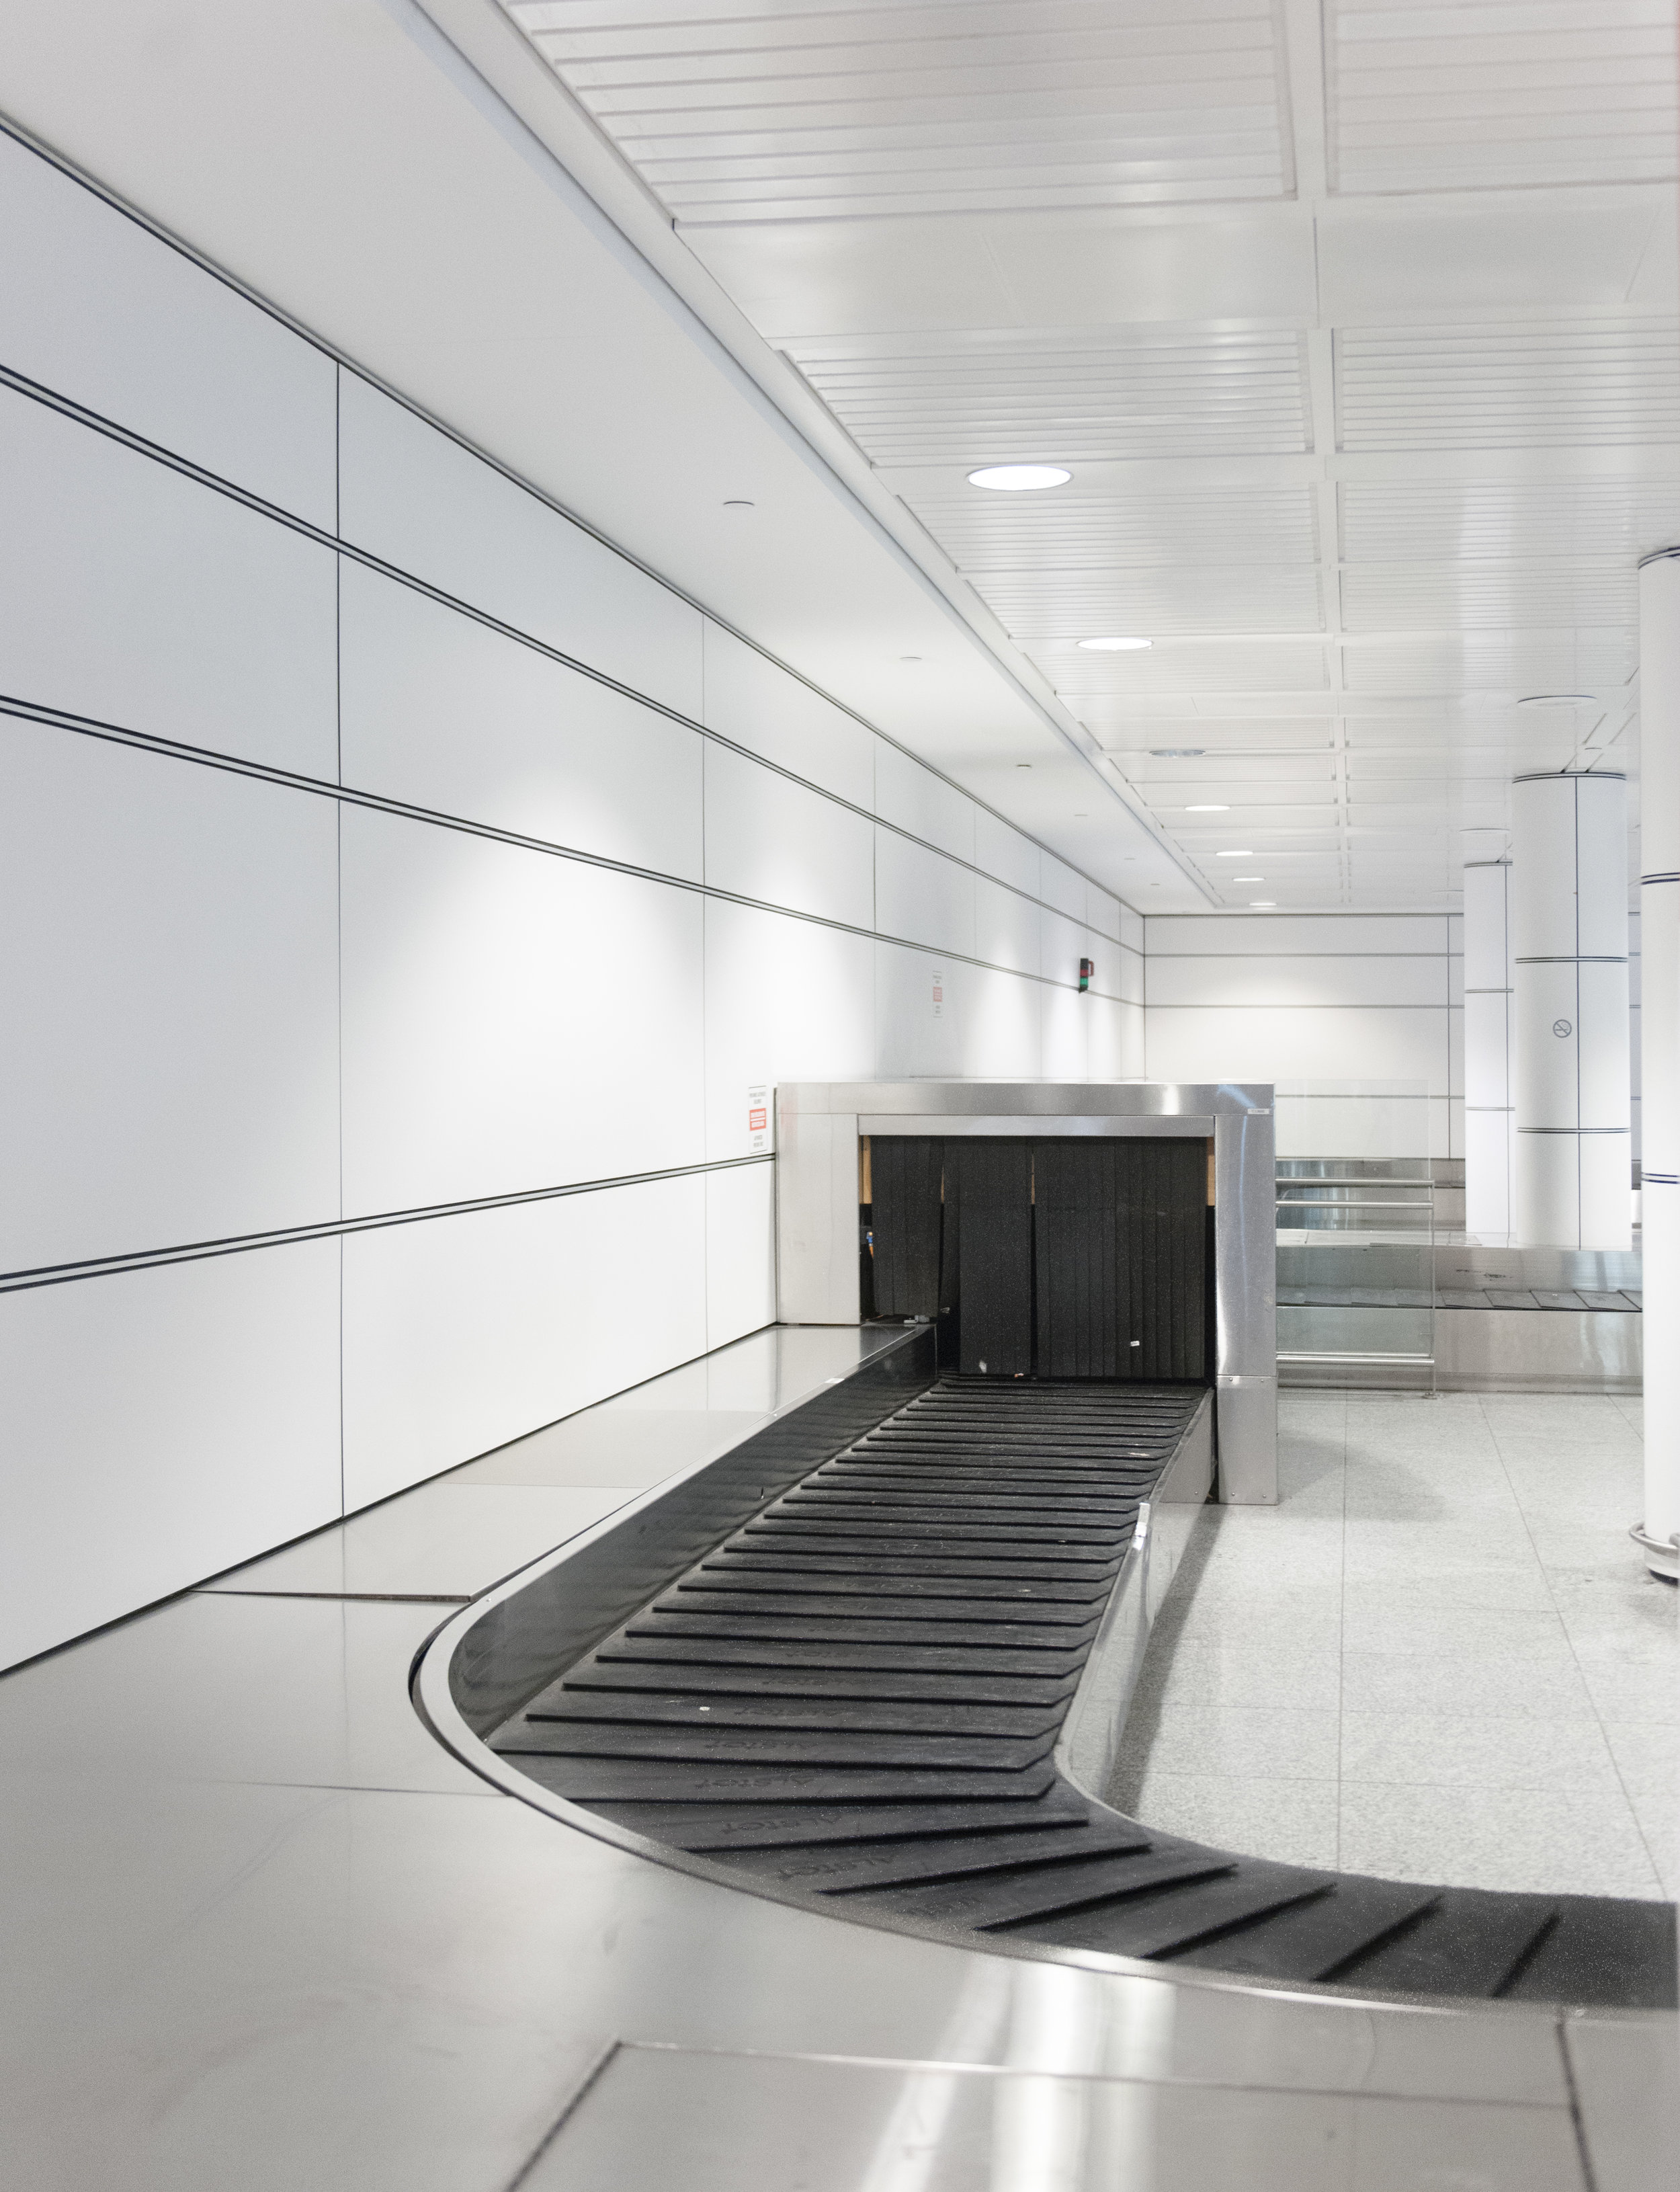 Airport The Laird Co YUL luggage carousel curve.jpg